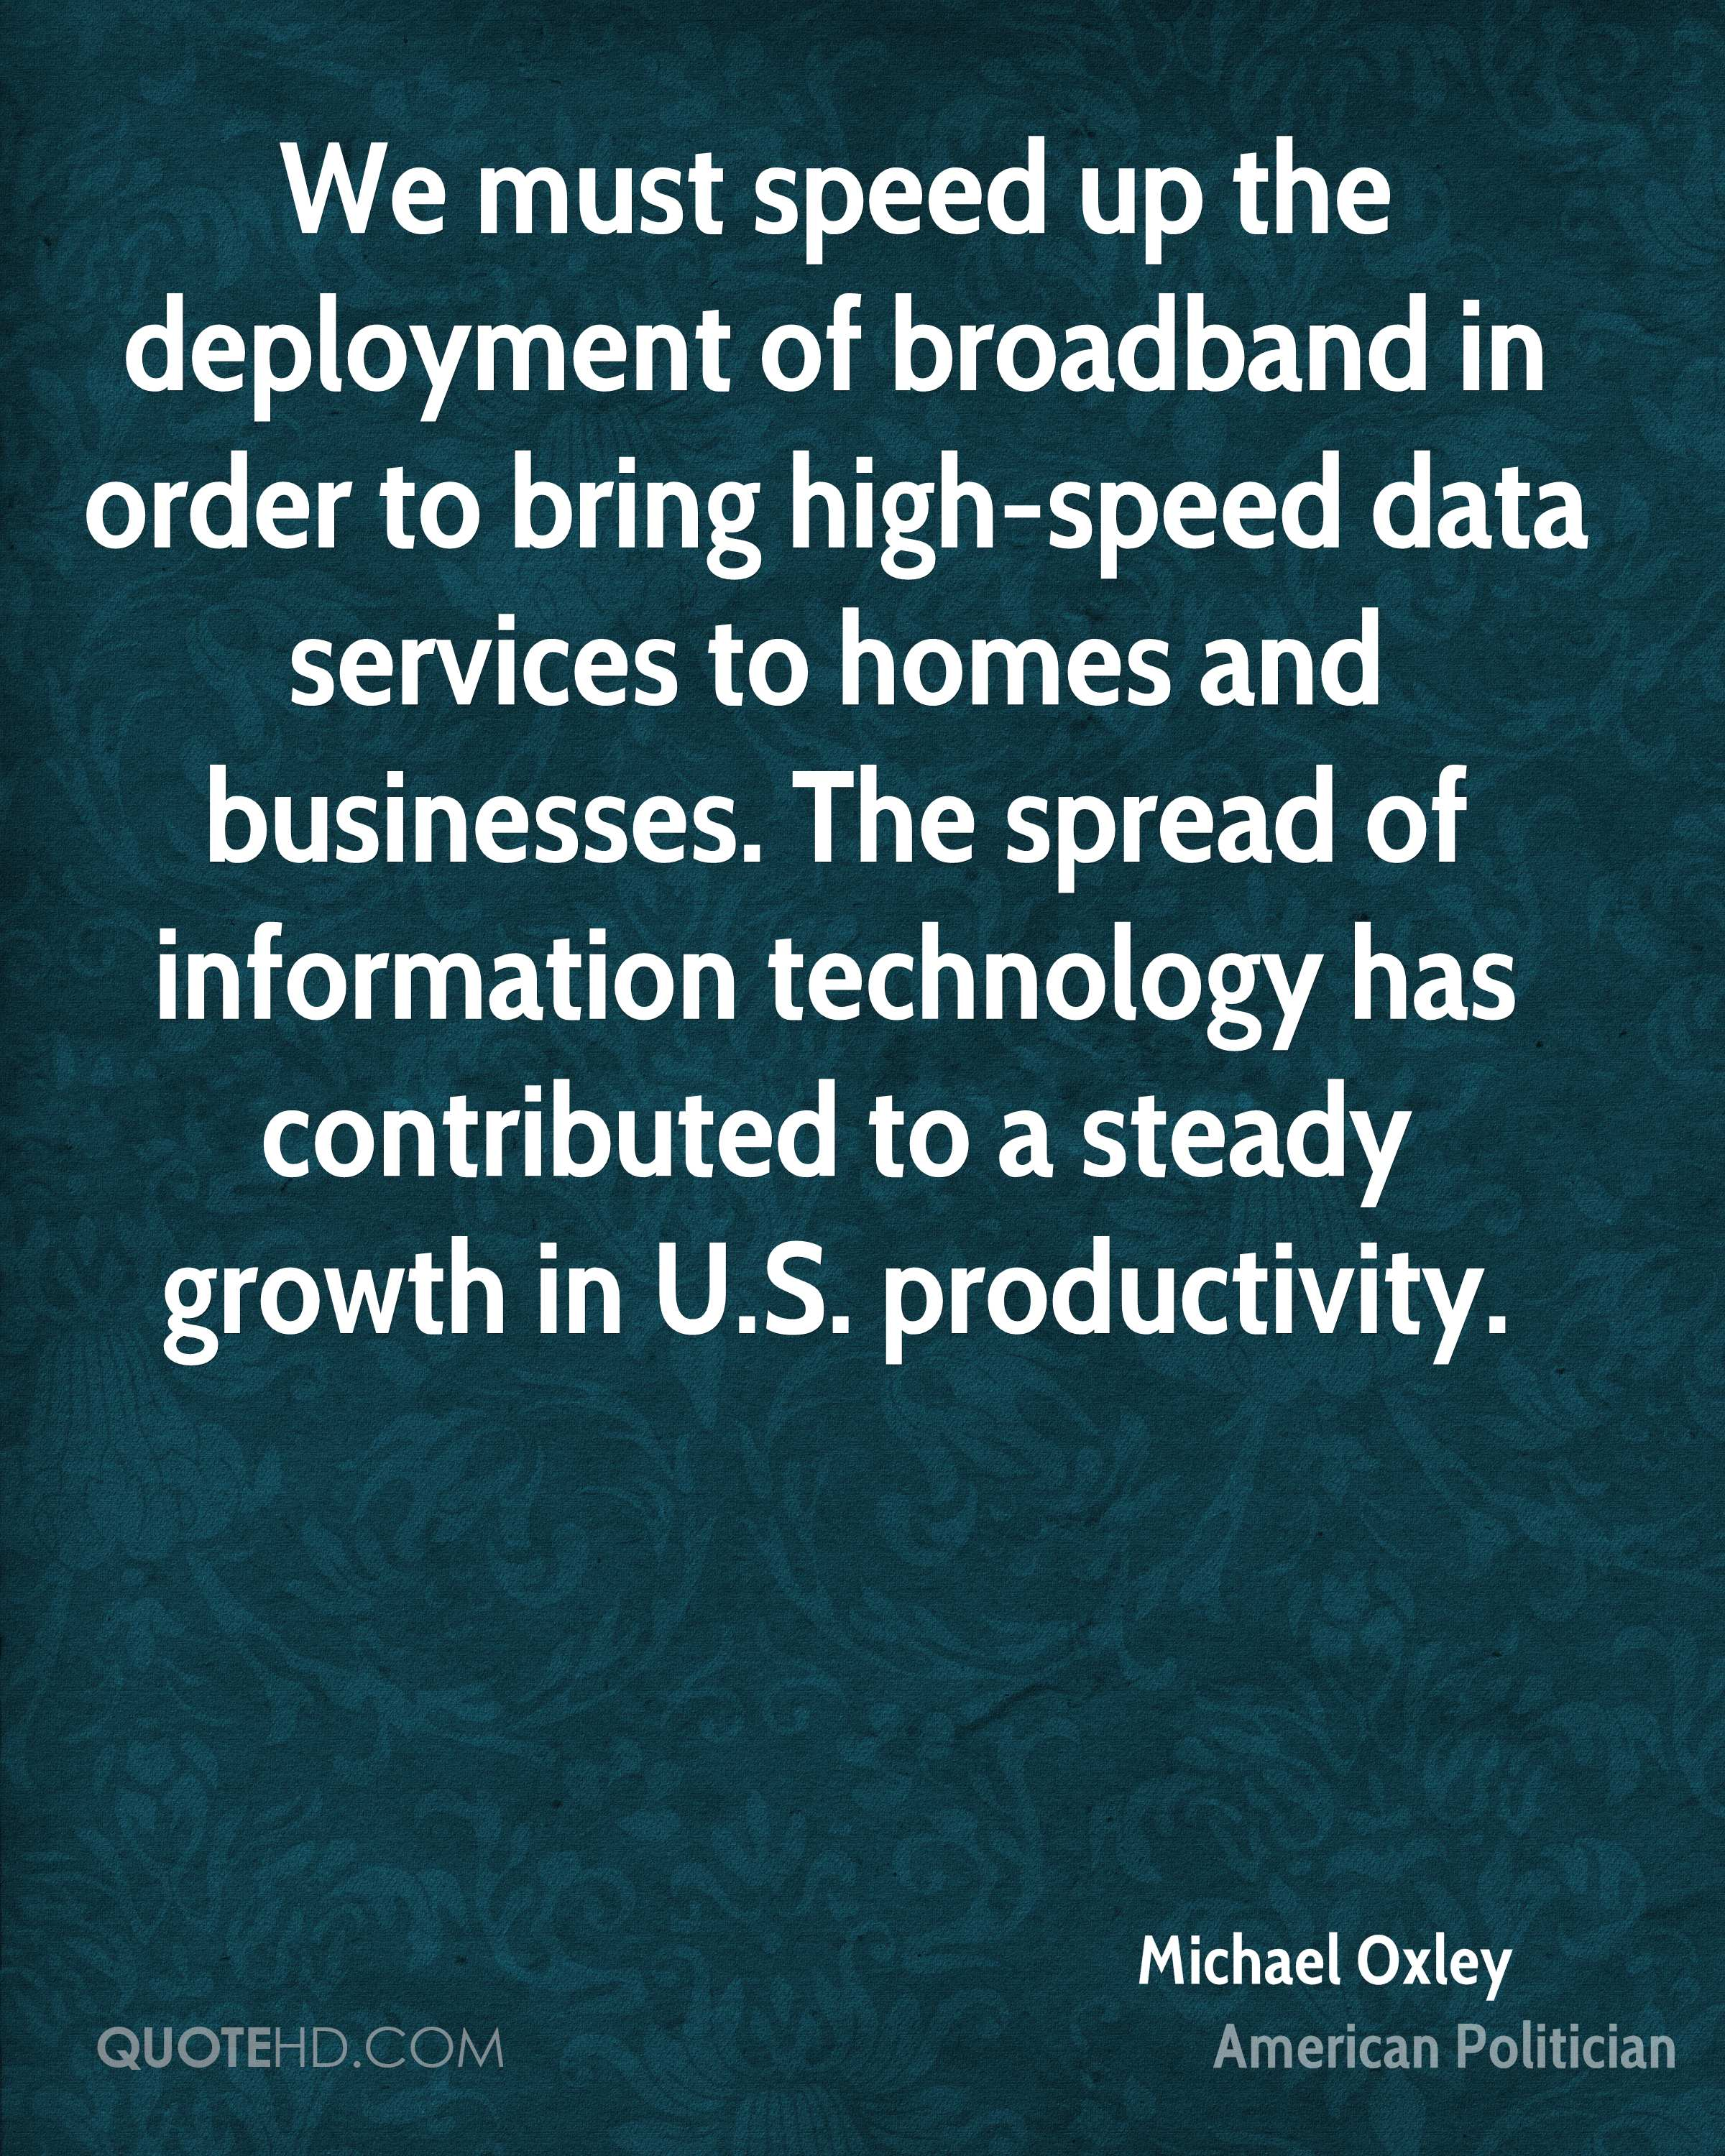 We must speed up the deployment of broadband in order to bring high-speed data services to homes and businesses. The spread of information technology has contributed to a steady growth in U.S. productivity.